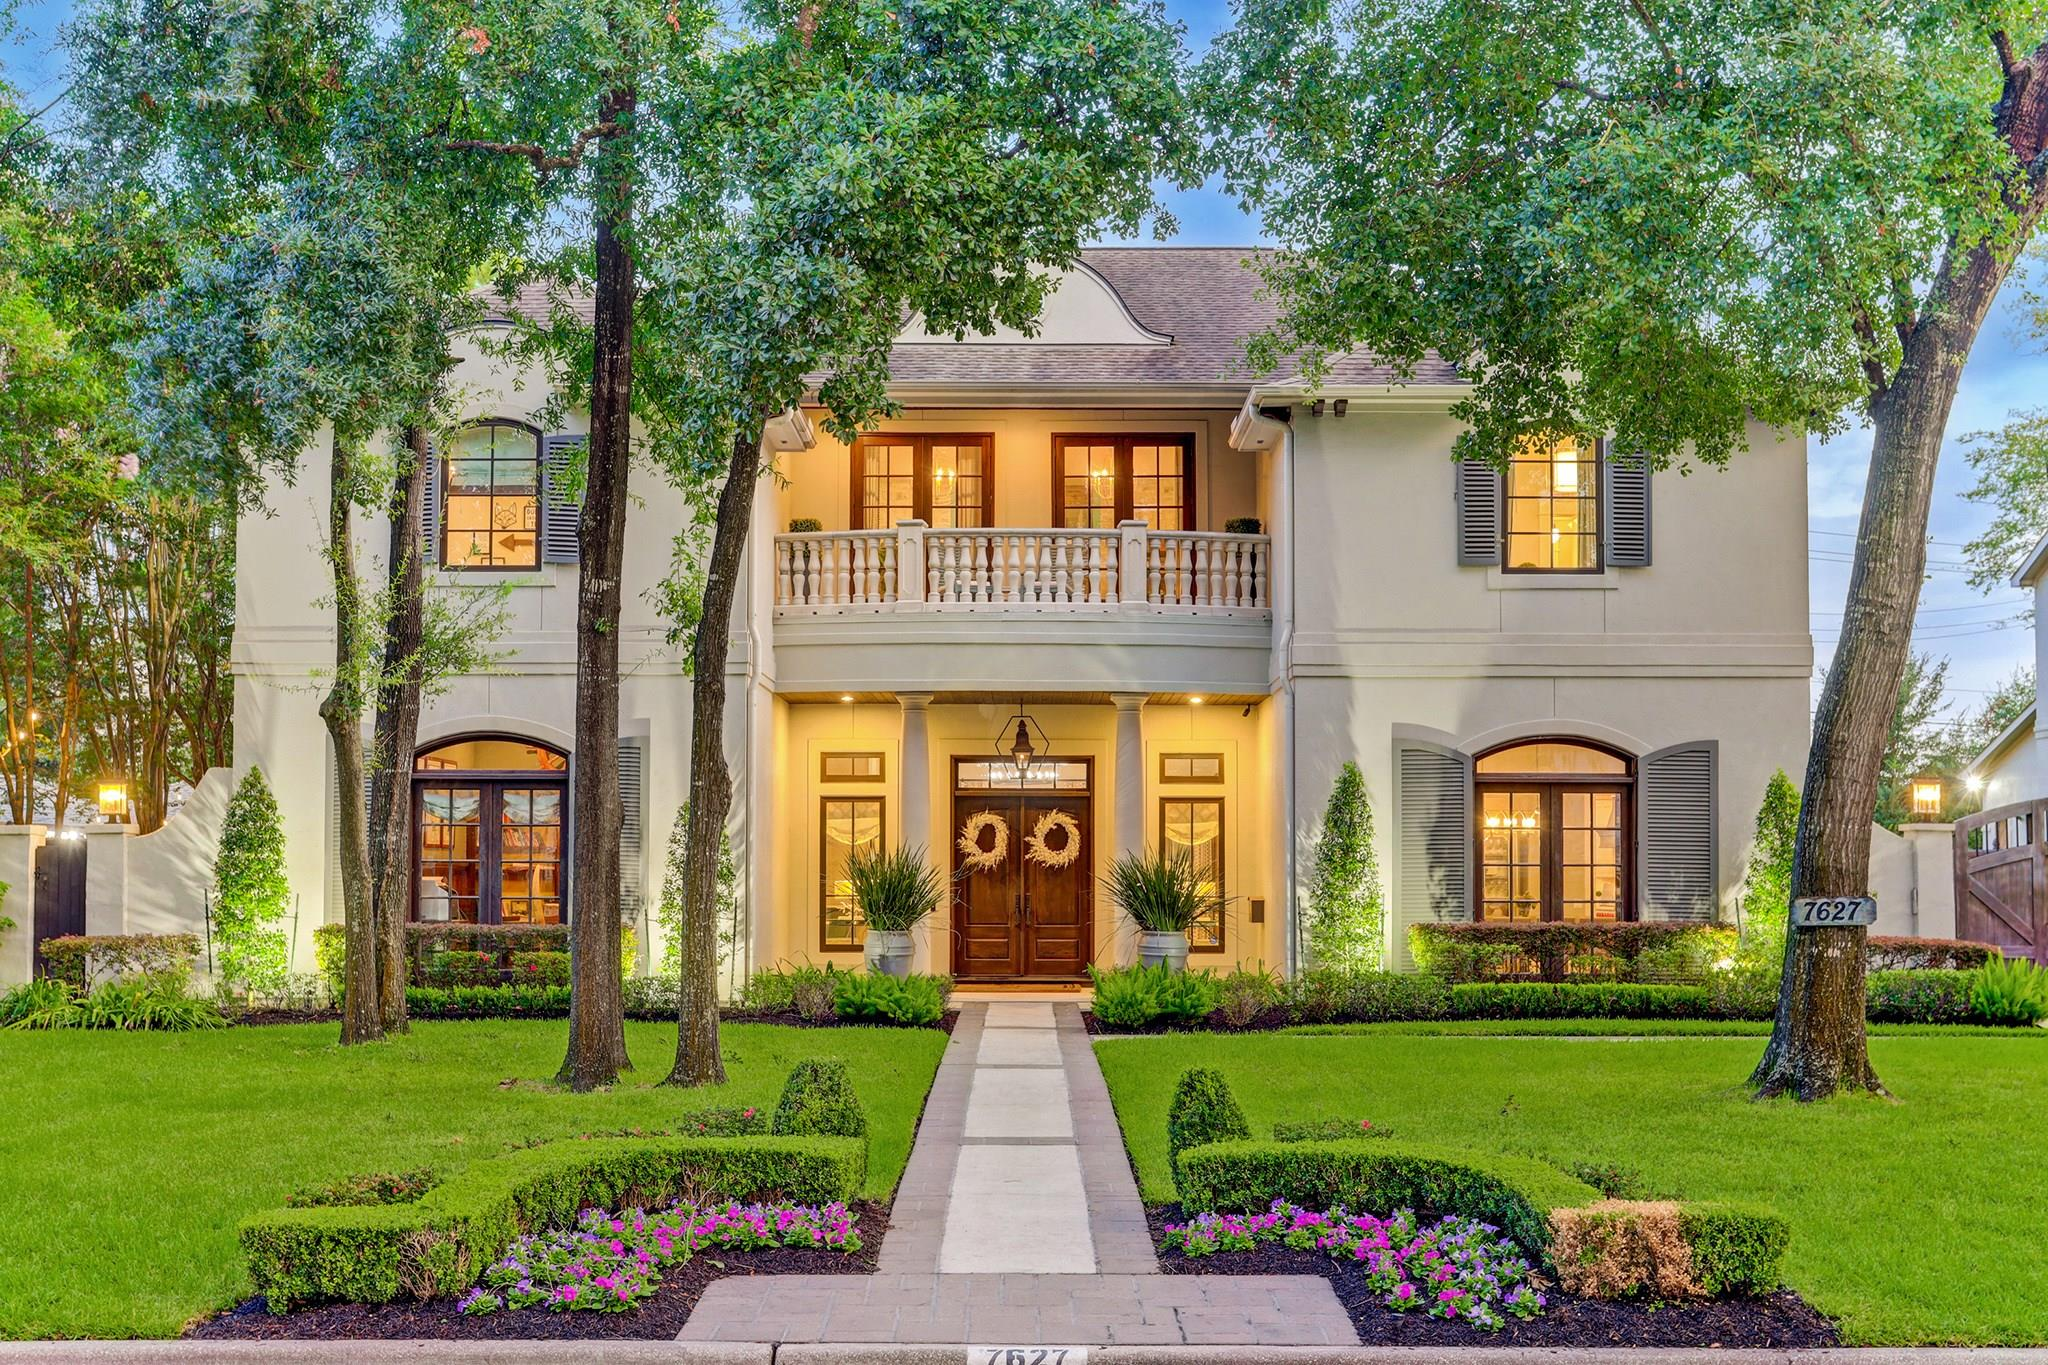 7627 Betty Jane Lane Property Photo - Houston, TX real estate listing